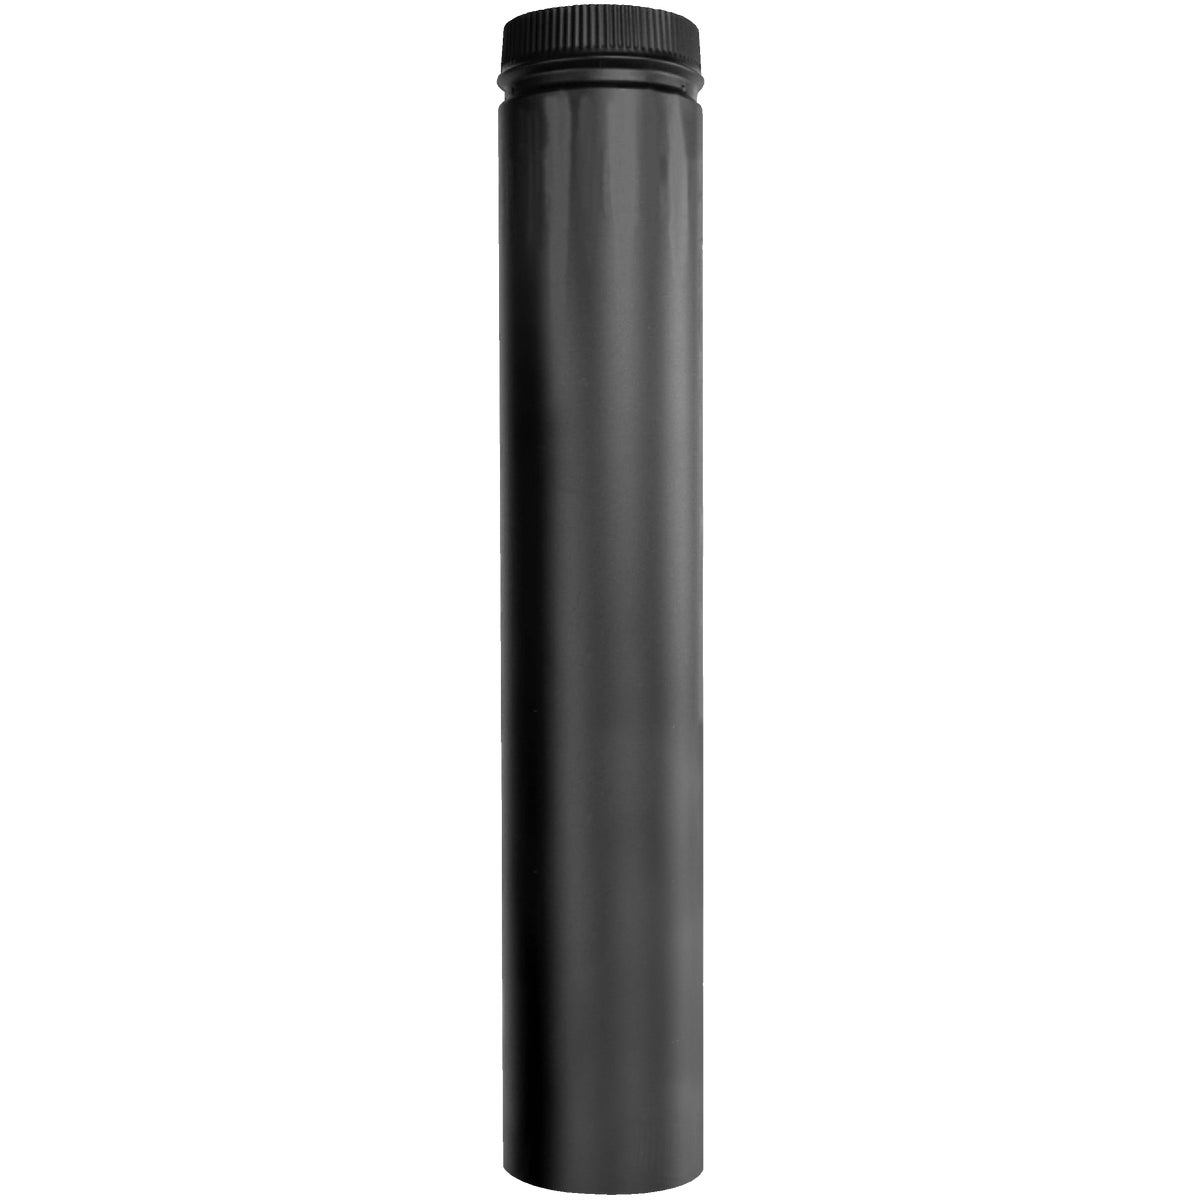 6X36 DBL WALL SMOKE PIPE - 266036 by Selkirk Corporation